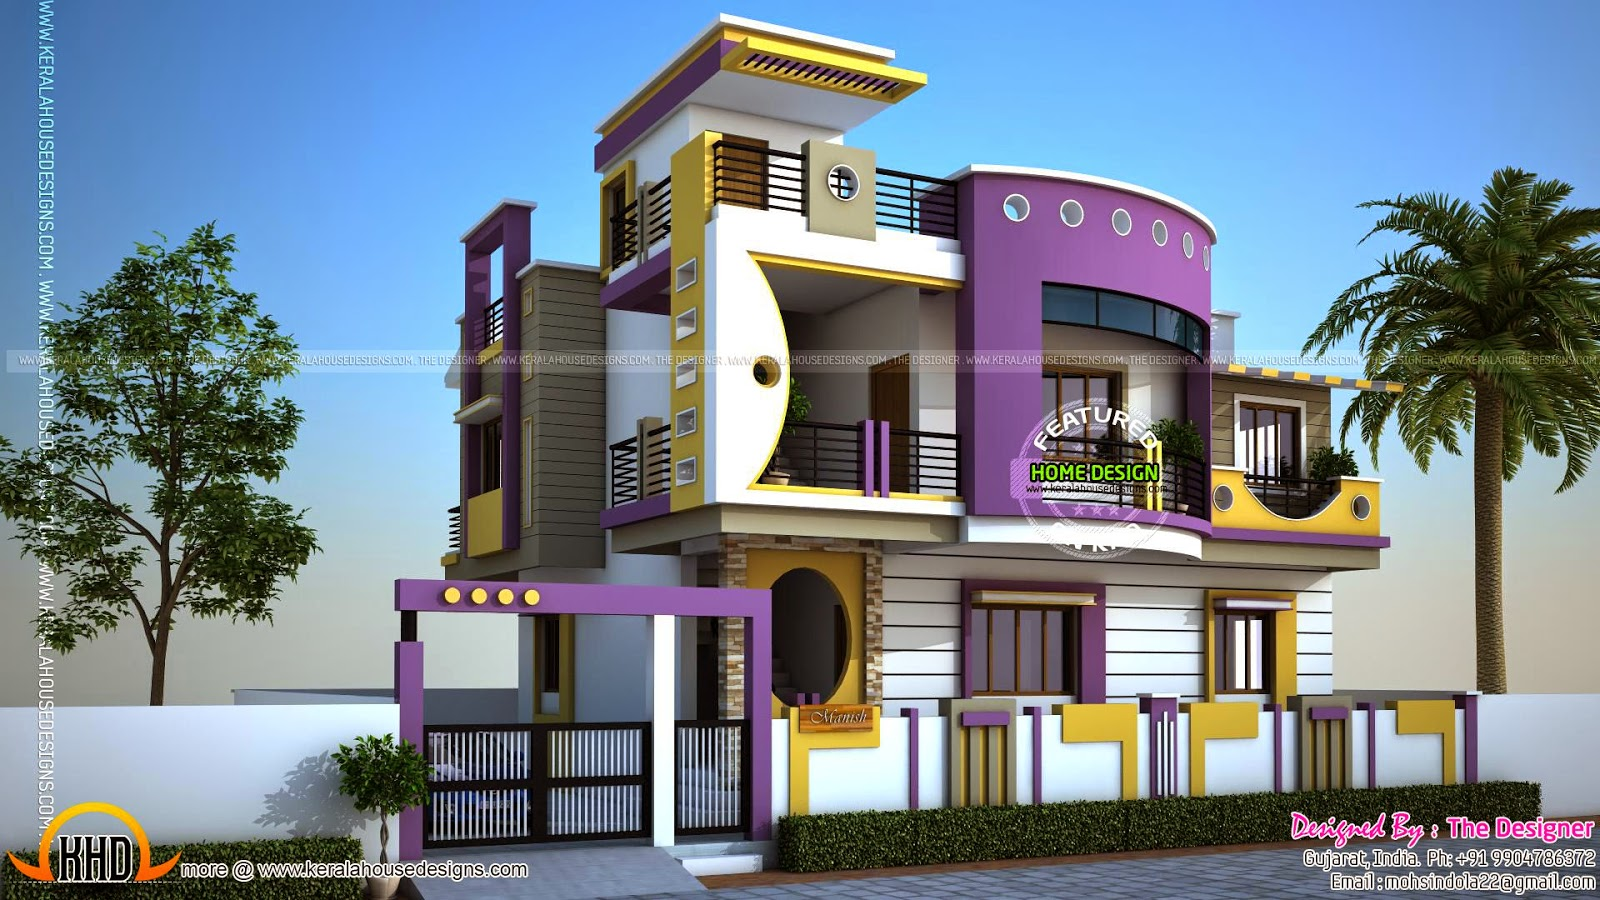 House exterior designs in contemporary style kerala home design and floor plans Exterior home entrance design ideas